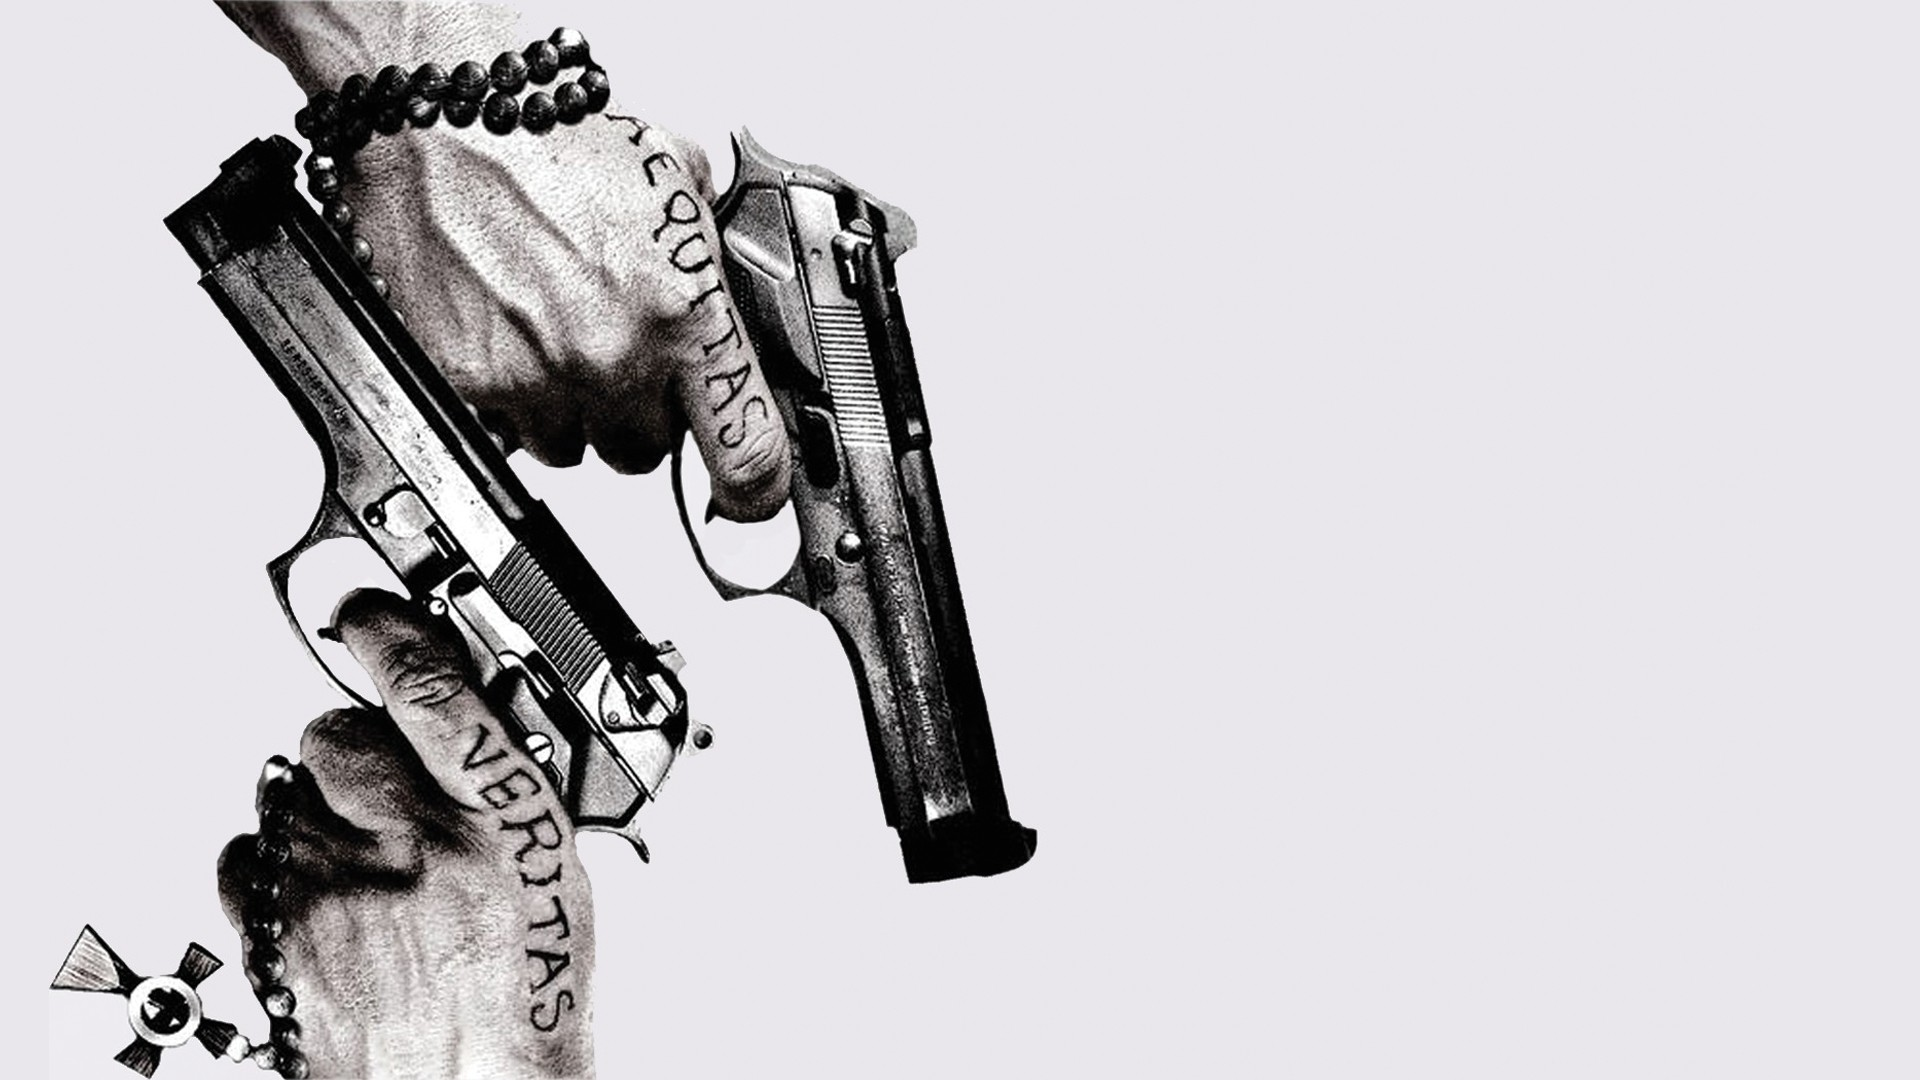 Res: 1920x1080, Cross pistols guns movies boondock saints monochrome white background rosary   wallpaper